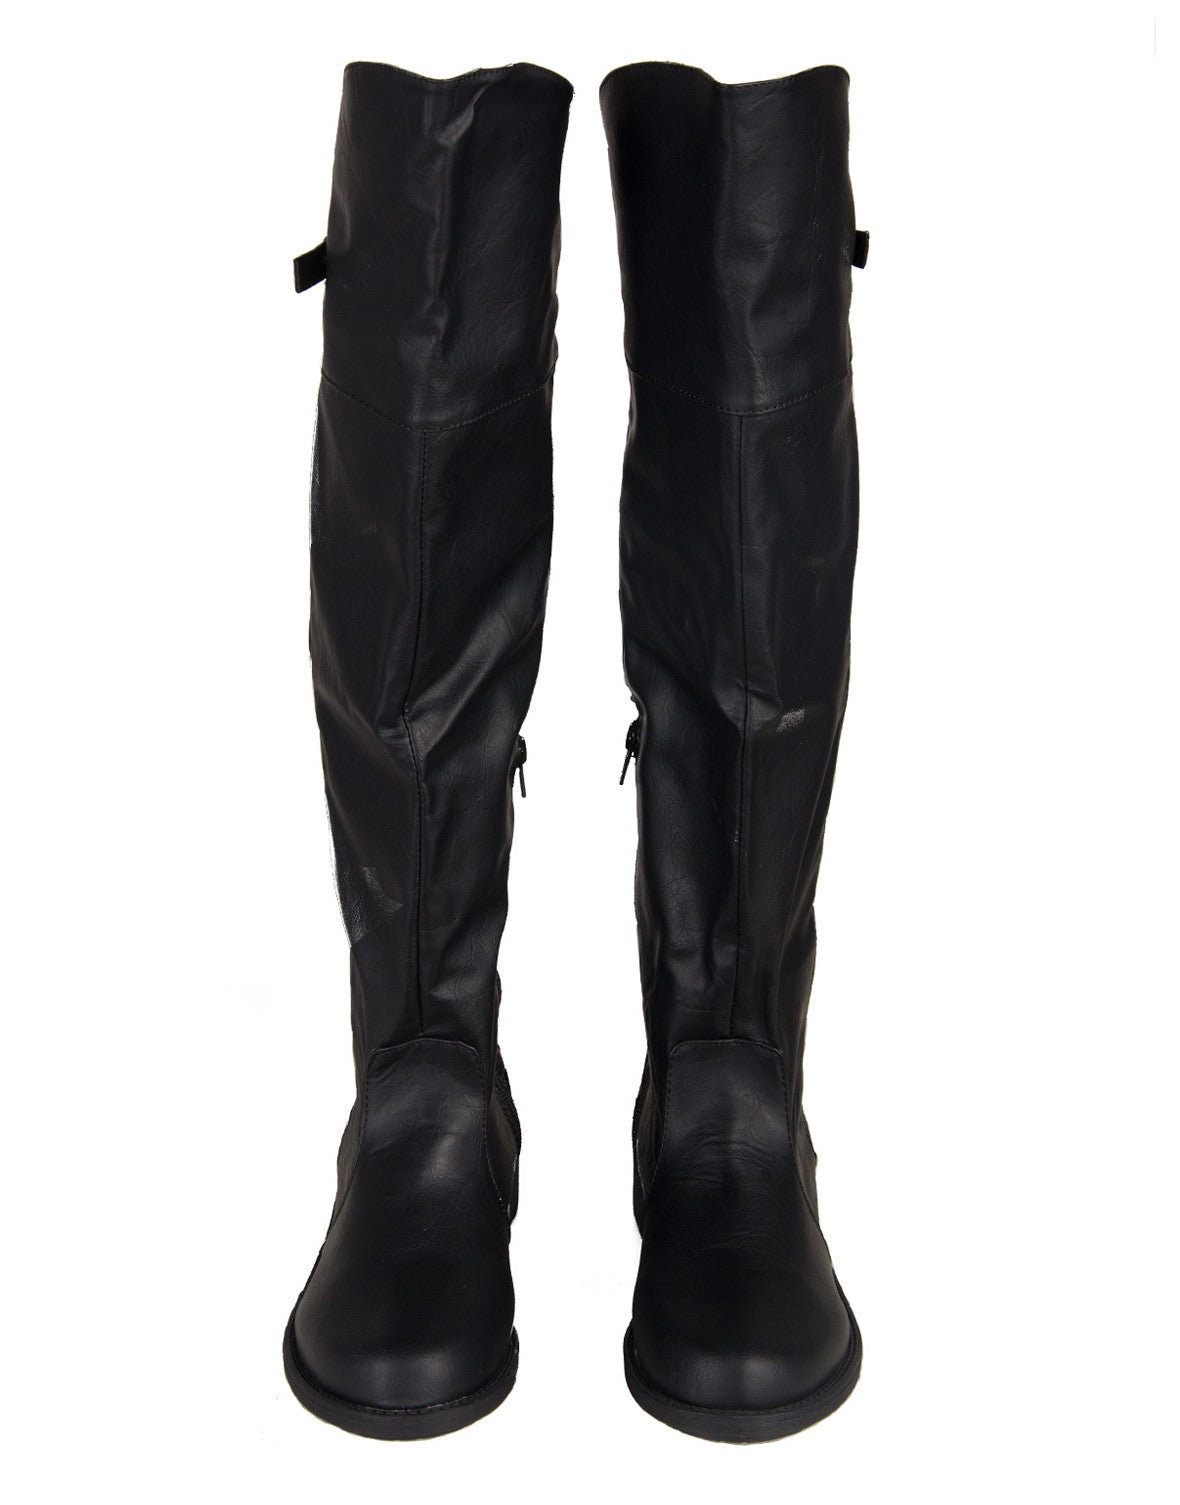 Quilted Back Riding Boots - Black - 2020AVE